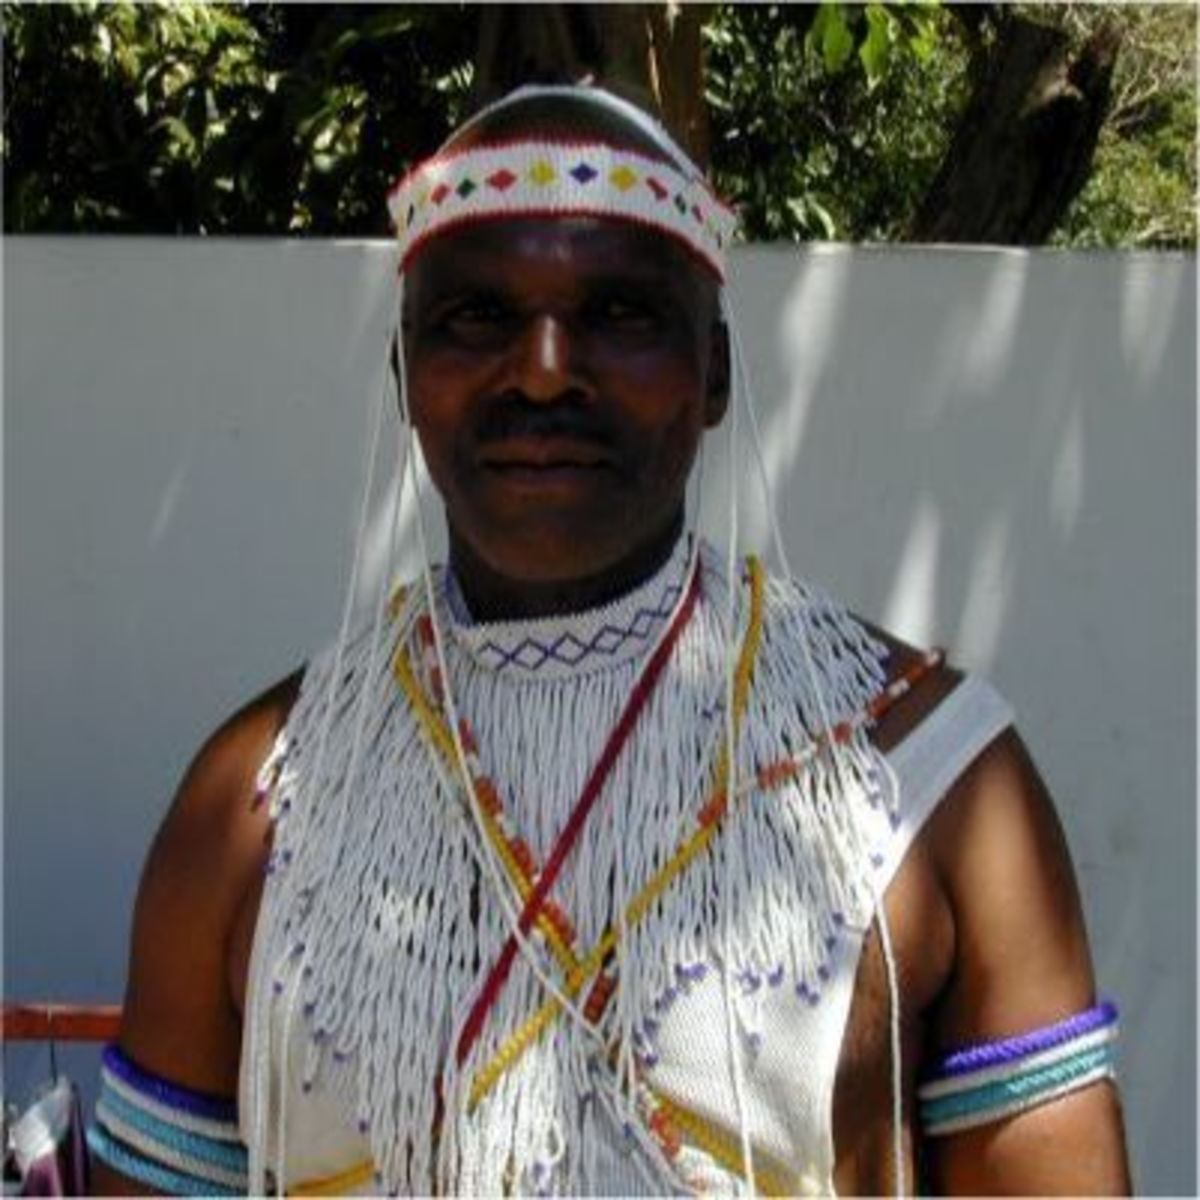 A xhosa man clad in clan garb